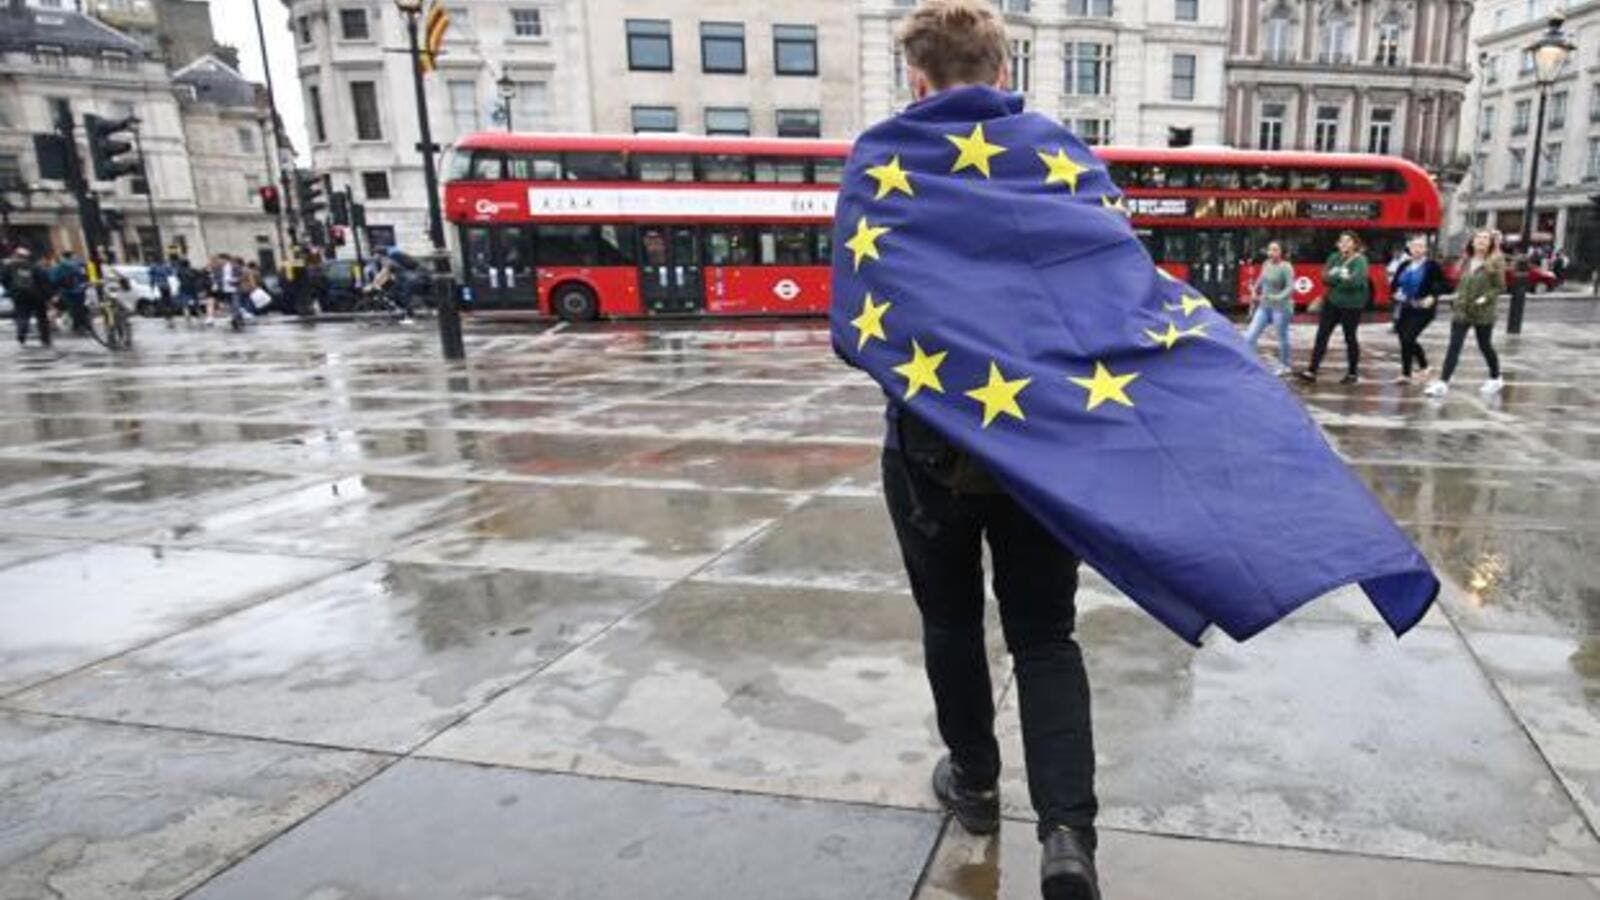 A demonstrator wrapped in a European flag leaves an anti-Brexit protest in Trafalgar Square, London. (AFP/File)